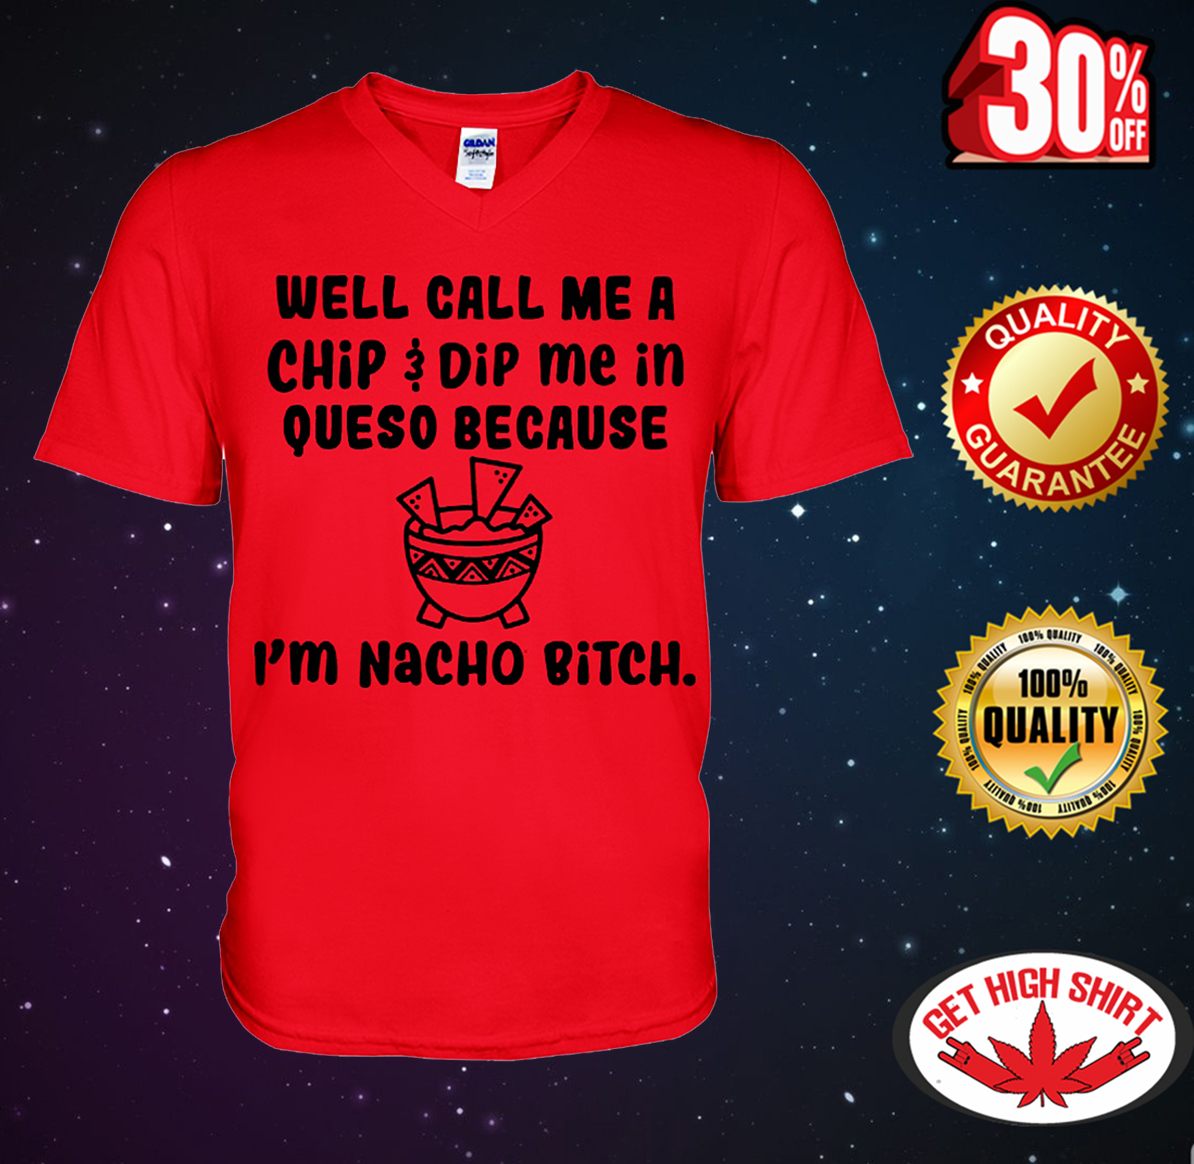 Well call me a chip dip me in queso because I'm nacho bitch shirt